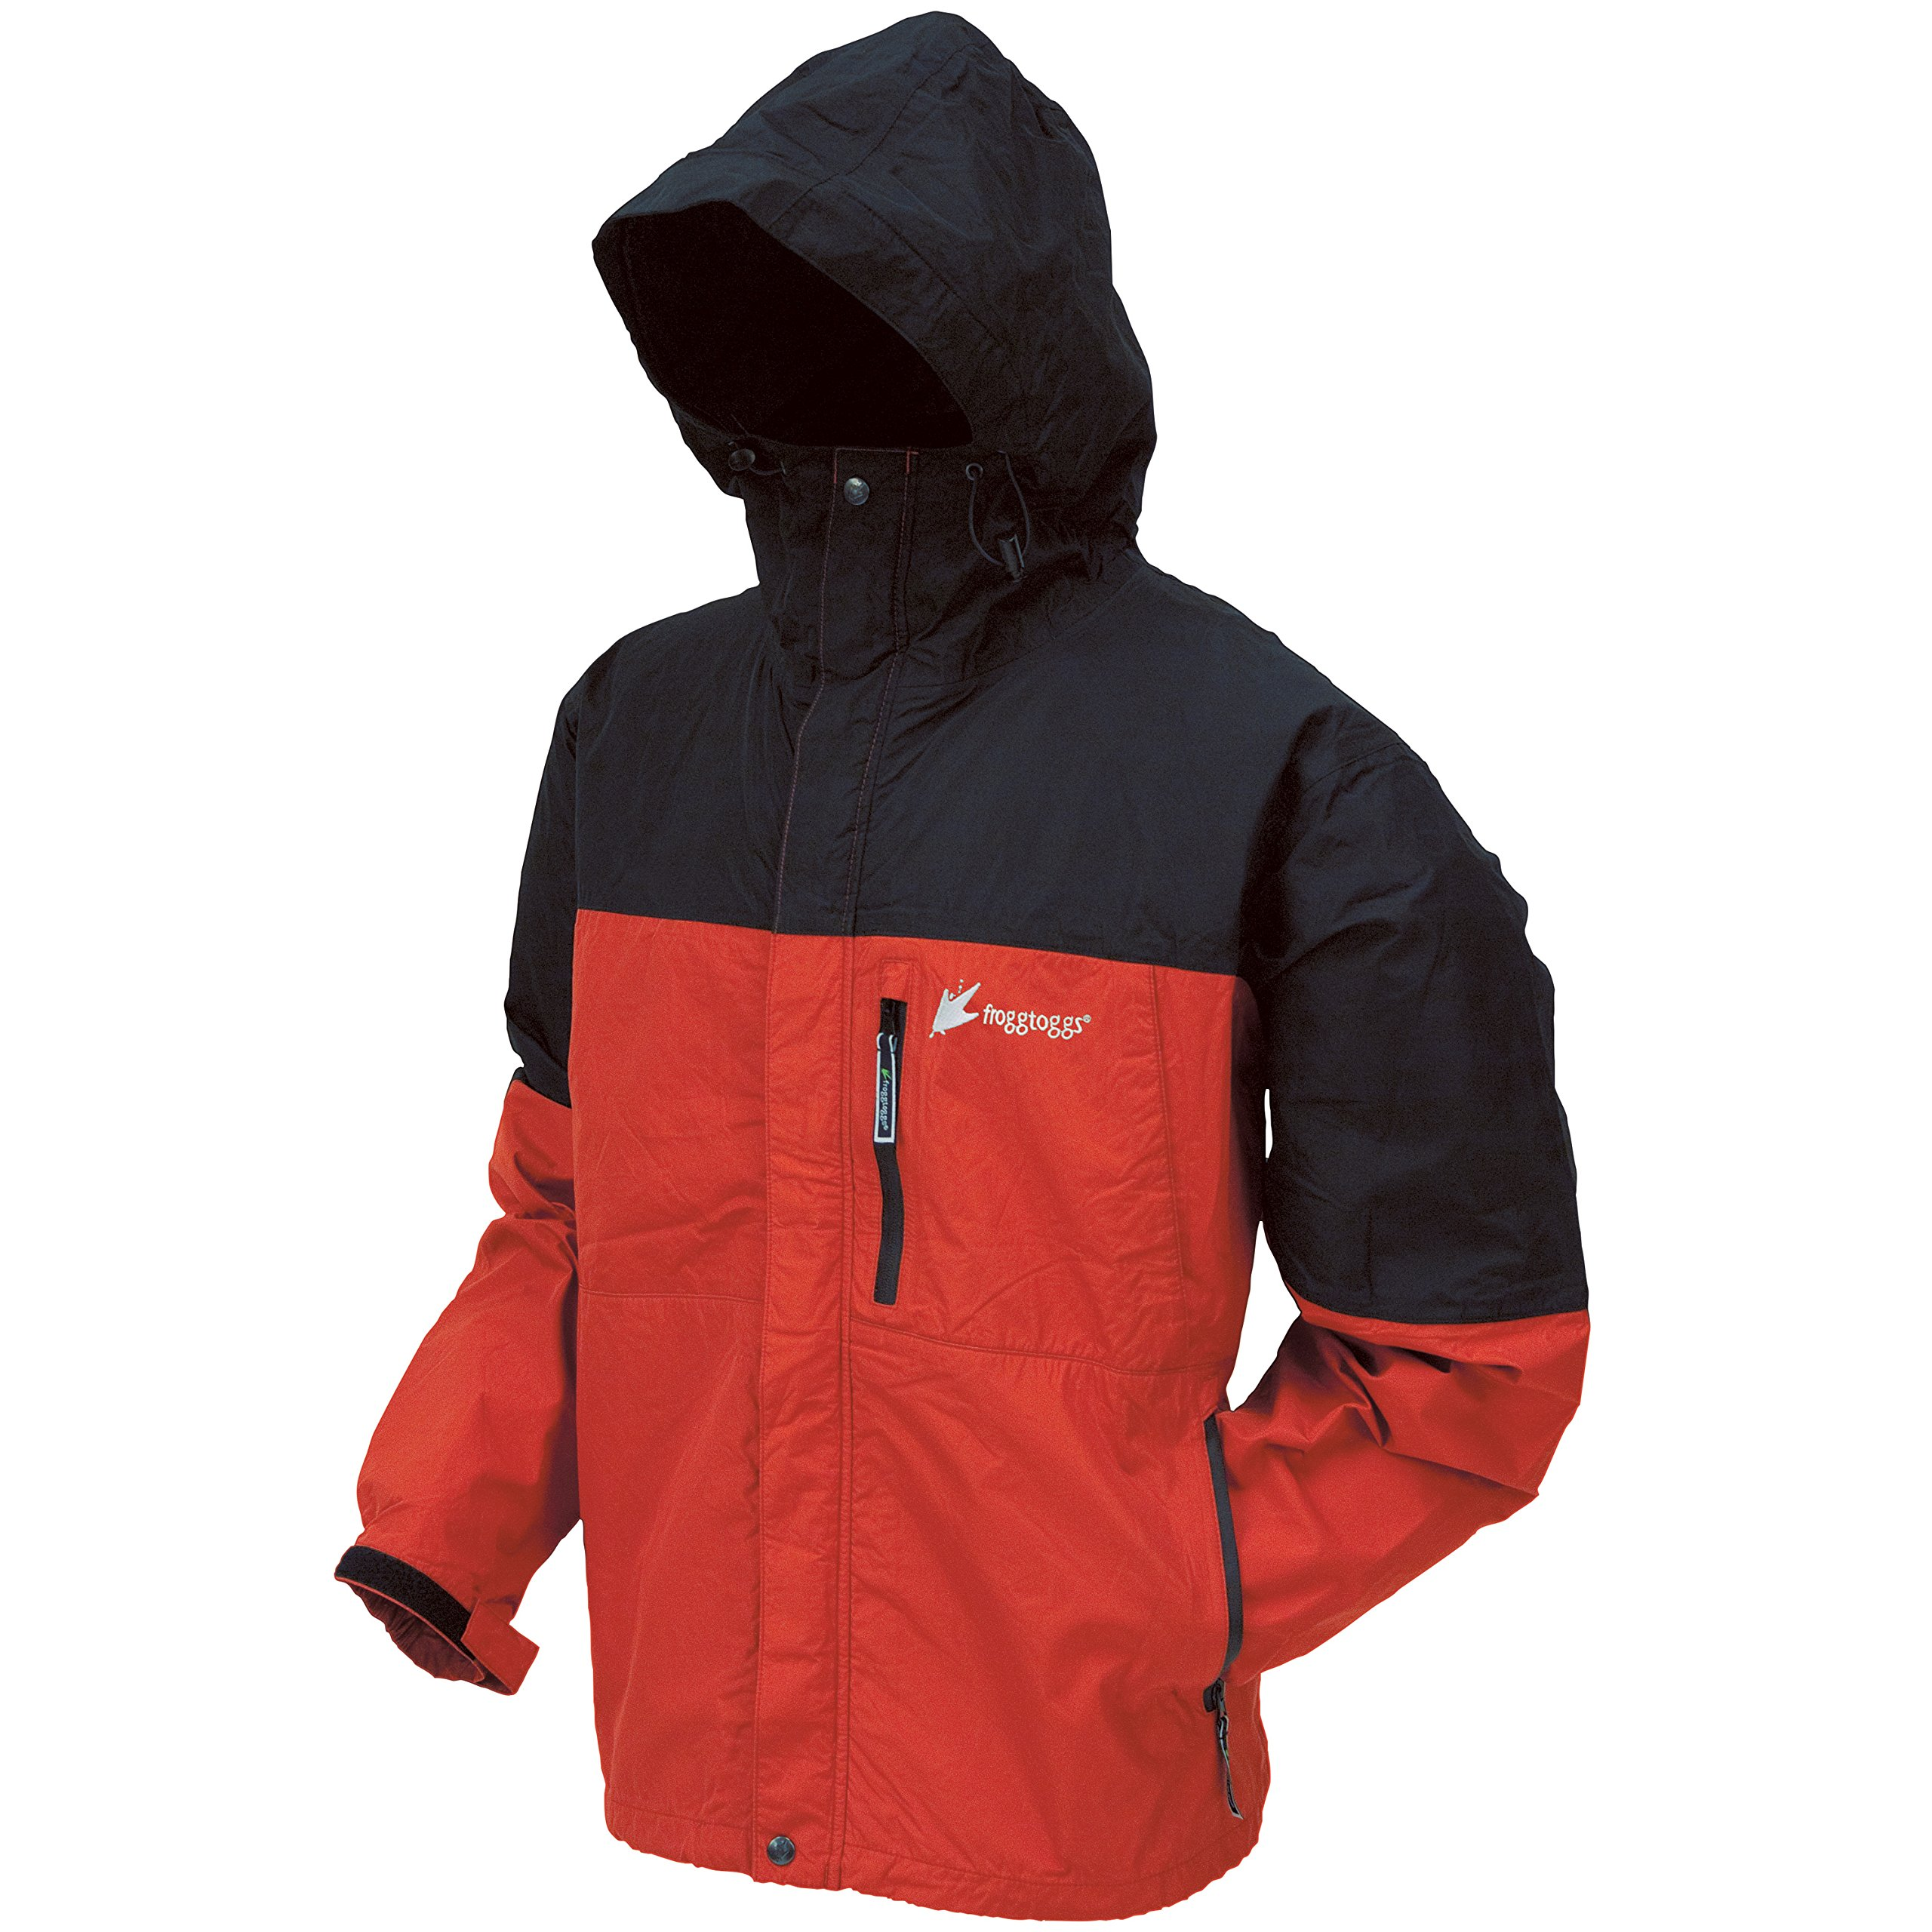 Frogg Toggs Toadz Rage Jacket, Red/Black, Medium